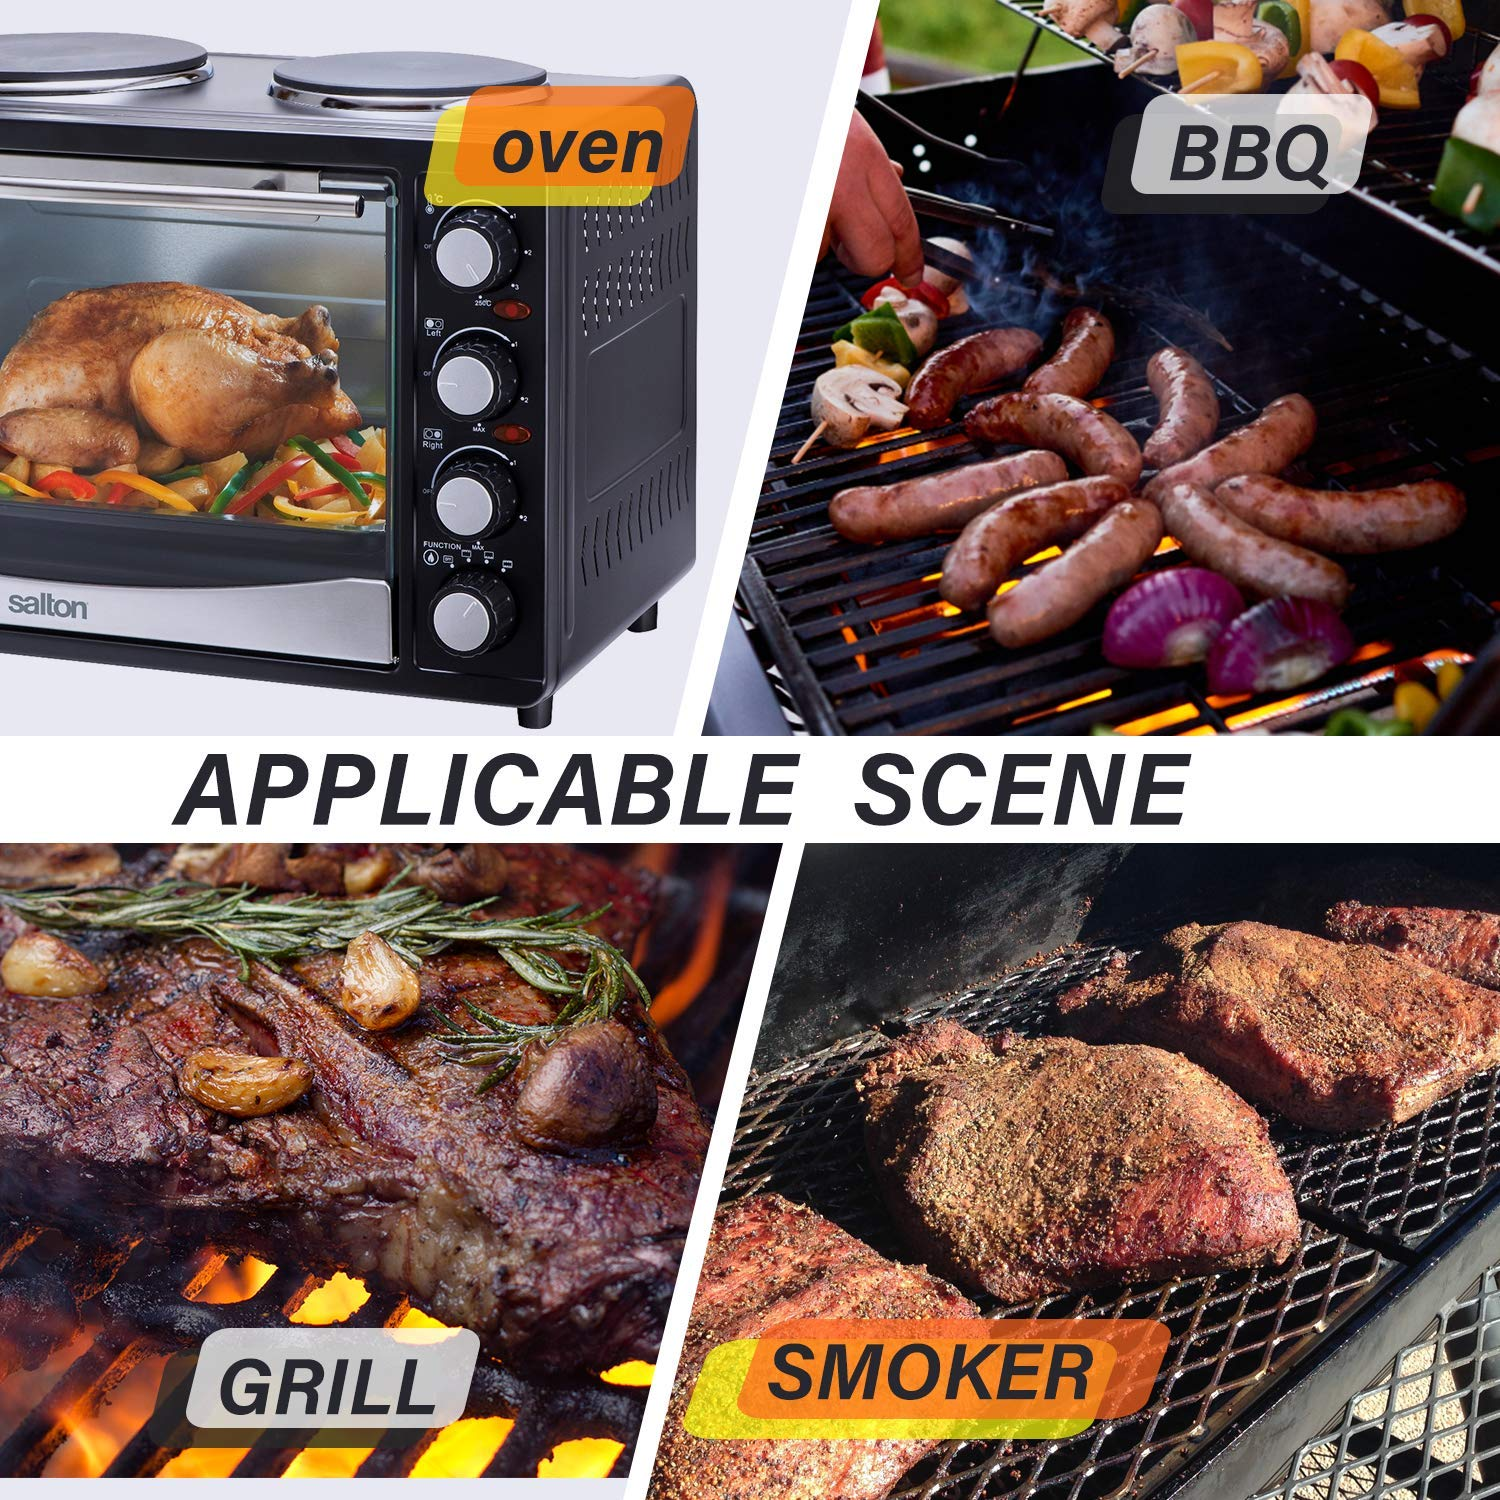 Inkbird Waterproof Wireless BBQ Grill Thermometer IBT-4XP IBT-4XC Thermometer with Four Probes, Orange W//Timer Magnet for Grill Barbecue Thermometers BBQ Oven Smoker,1000mAh Li-Battery